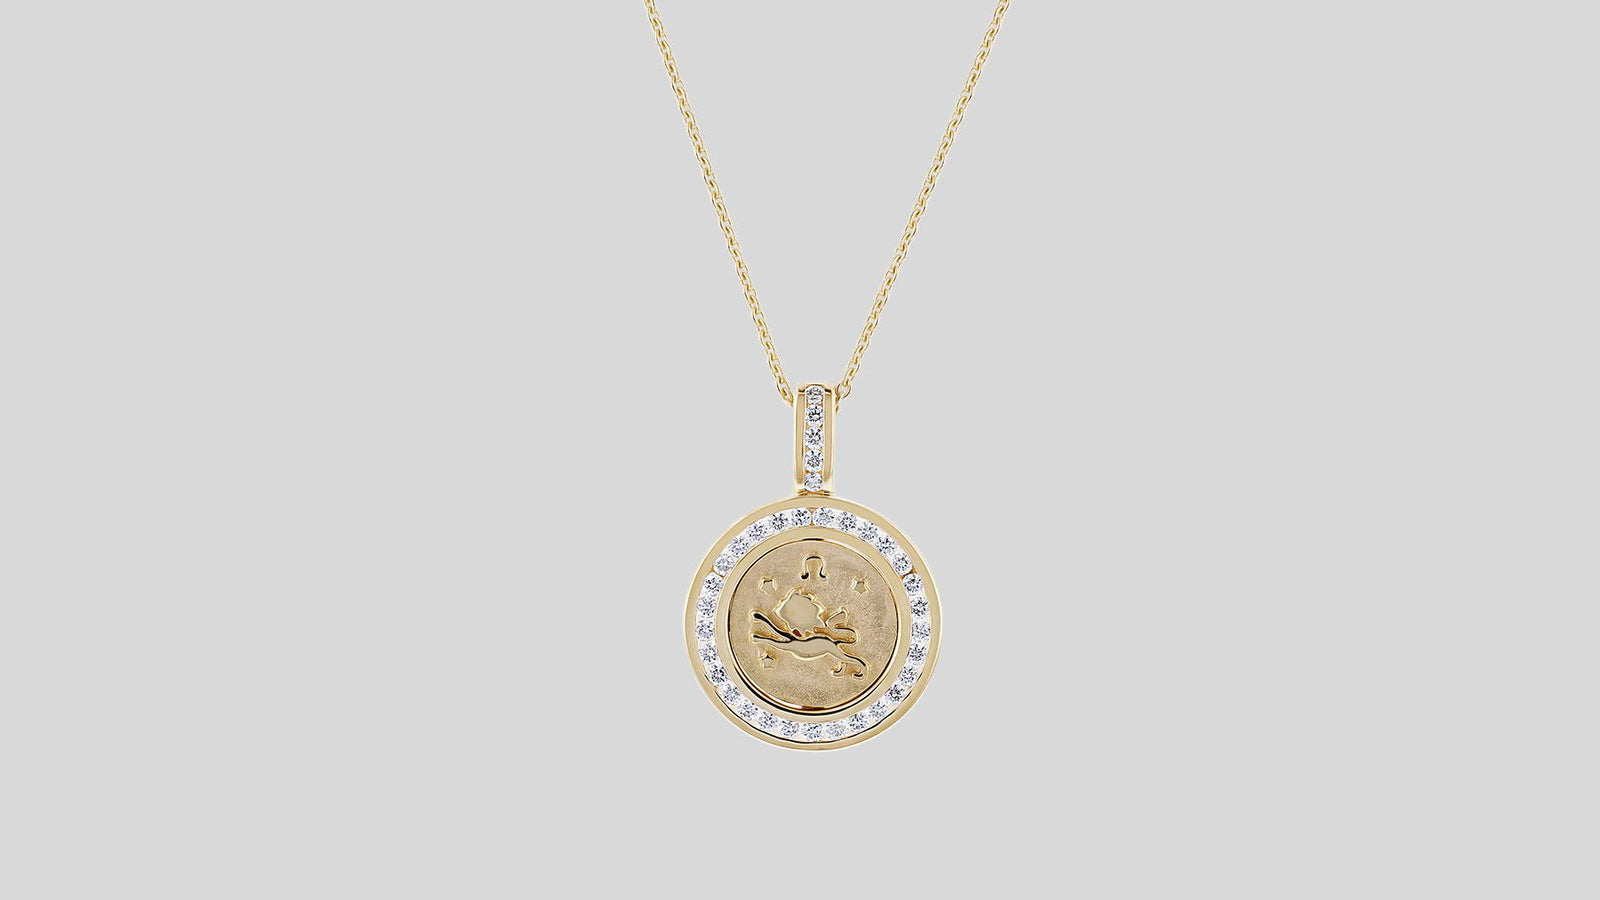 The Zodiac Necklaces without the 18k Gold Chain